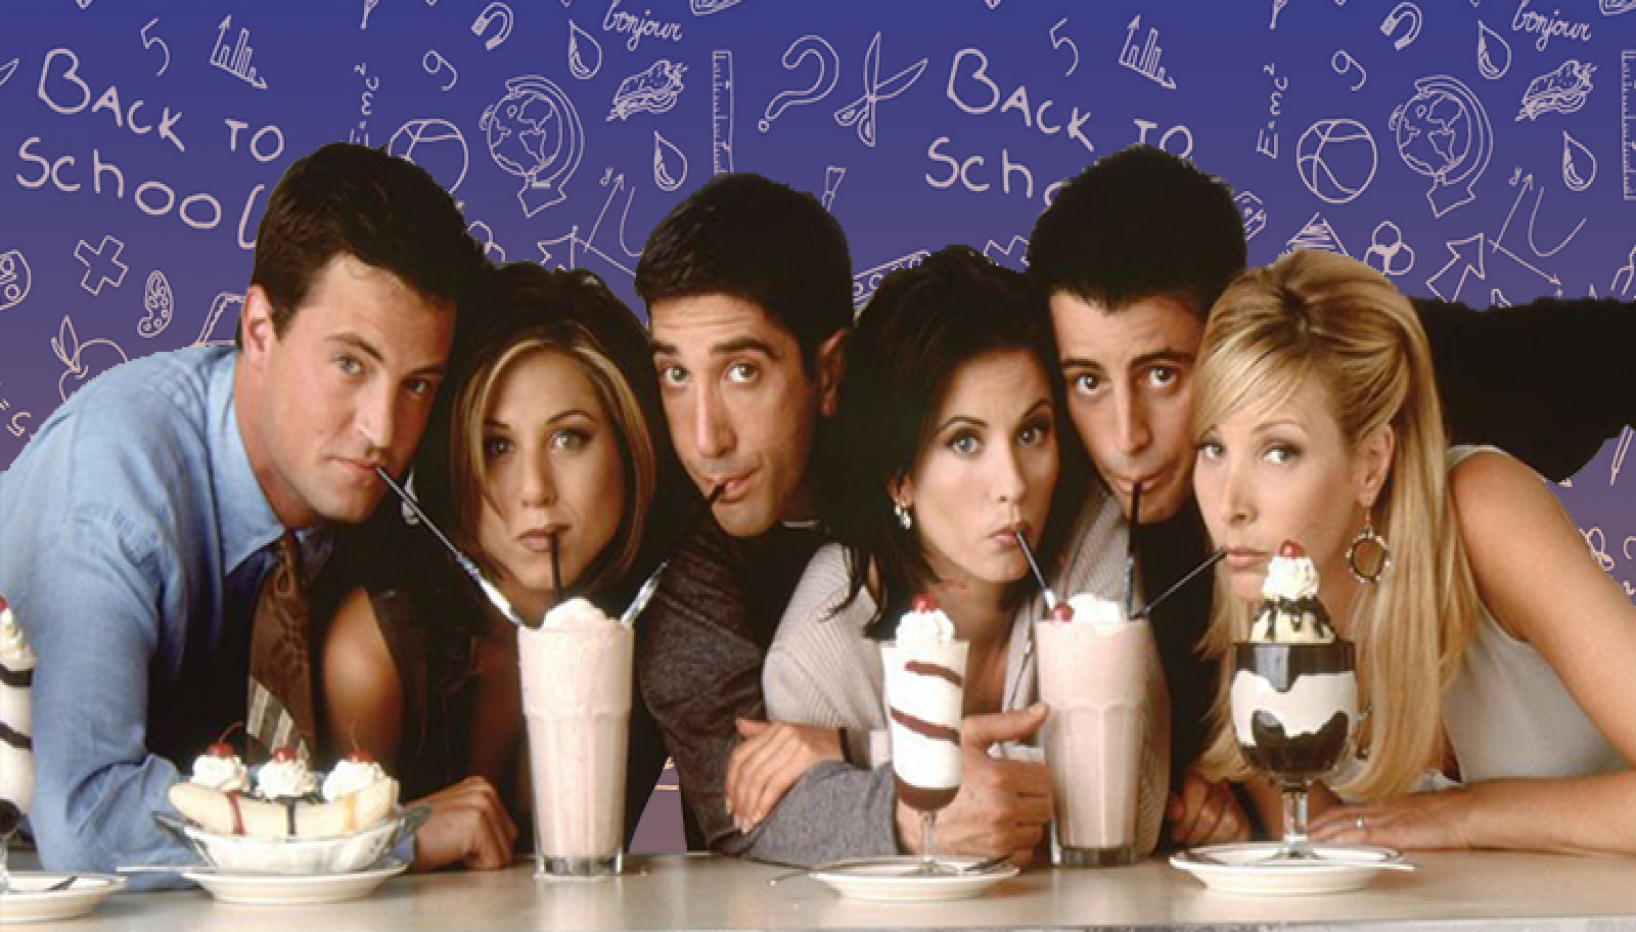 Take This F.R.I.E.N.D.S Quiz To Find Out If You Can Be A Part Of The Gang.